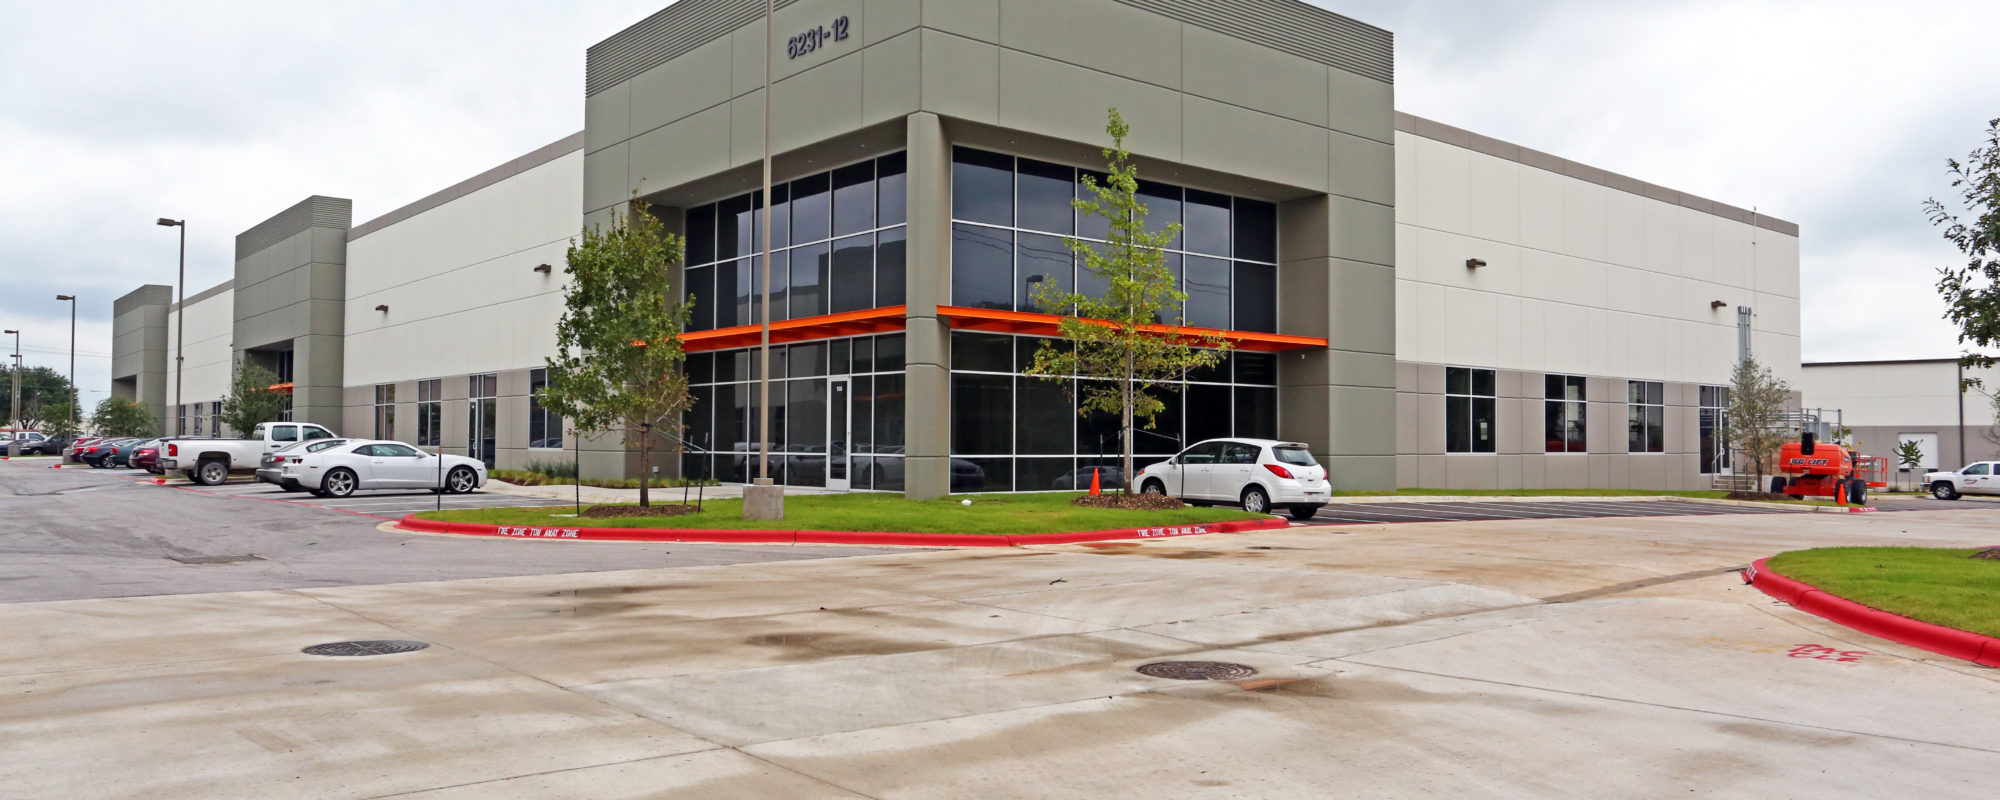 Expo Business Park   Industrial Property in Austin, Texas